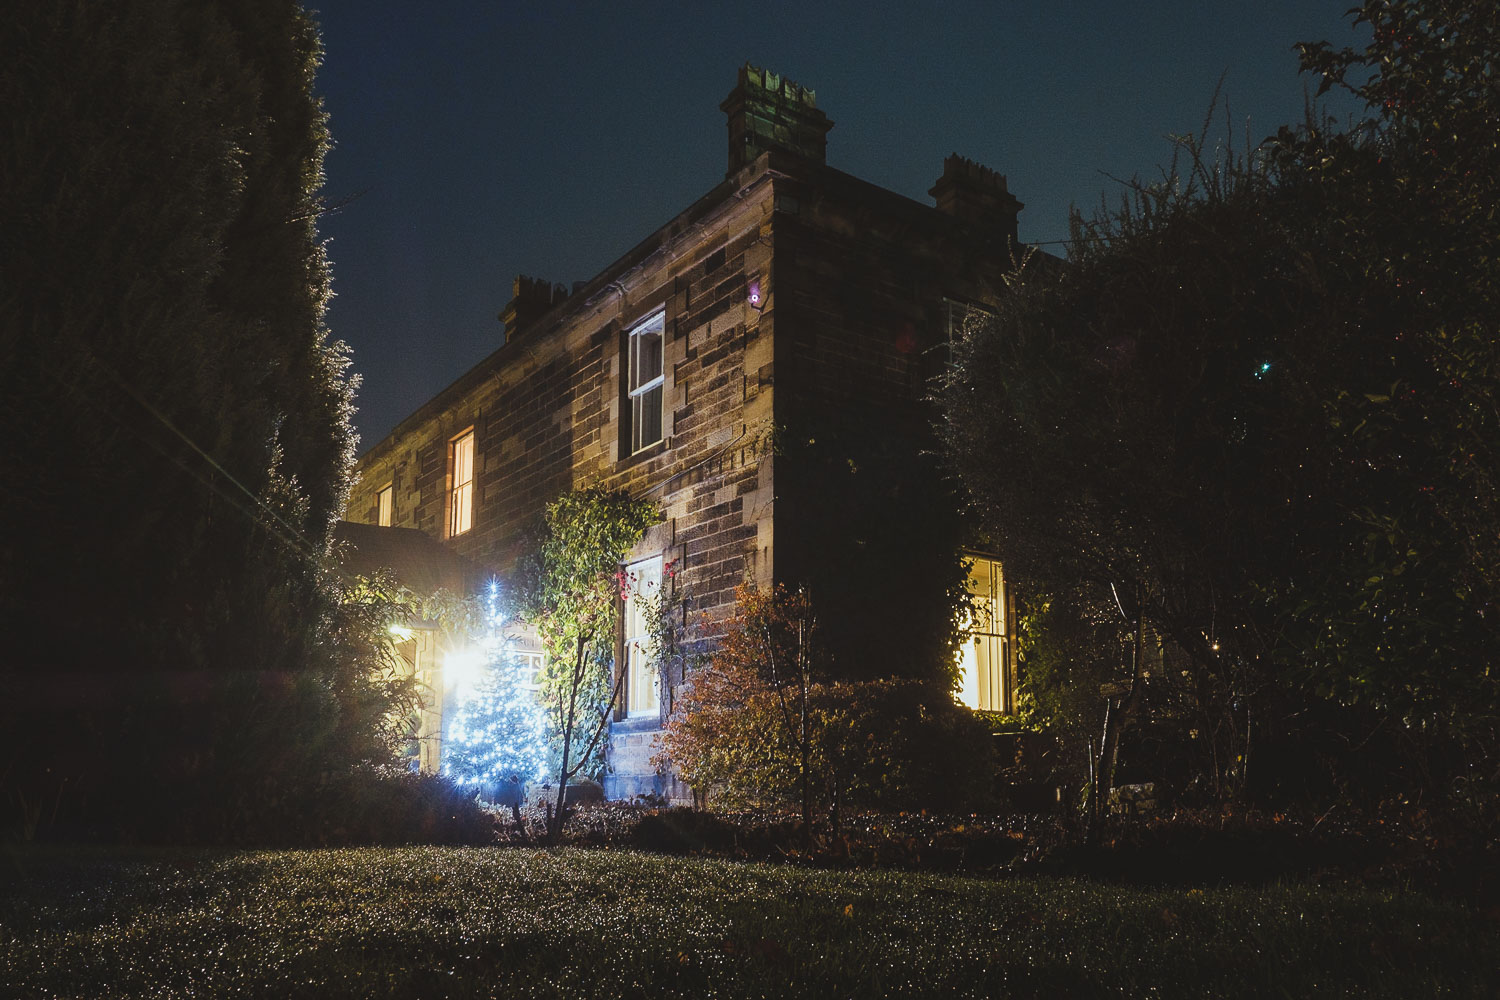 Horton Grange Northumberland wedding venue at night